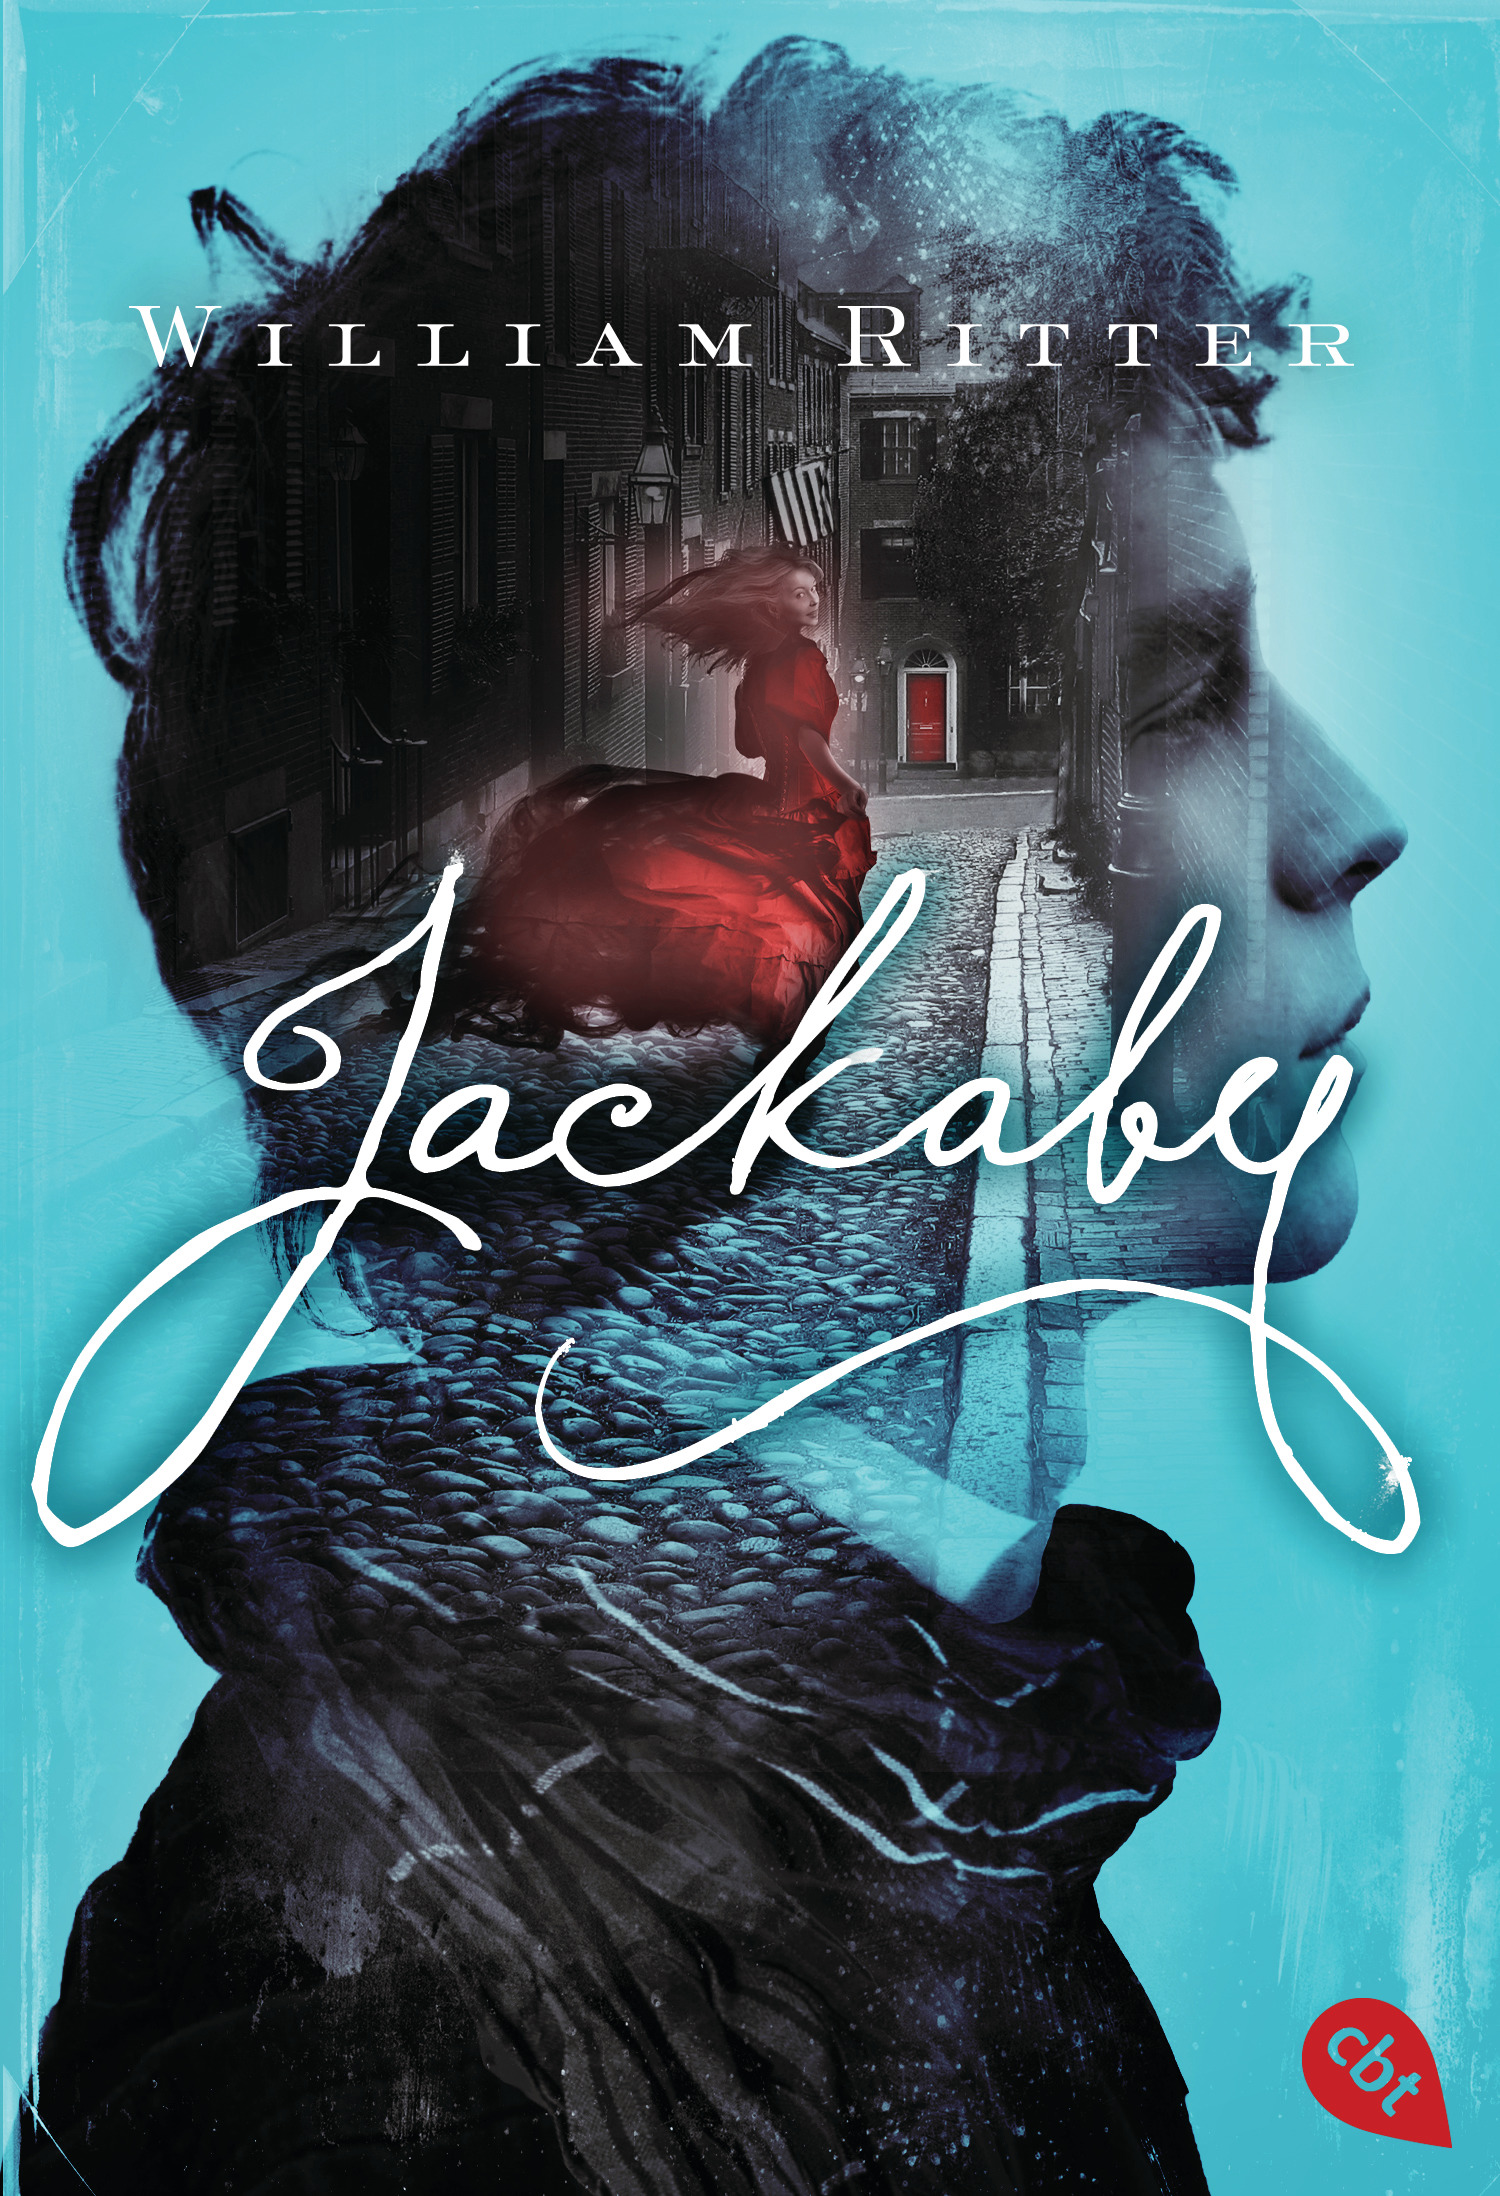 https://www.randomhouse.de/content/edition/covervoila_hires/Ritter_WJACKABY_01_164172.jpg